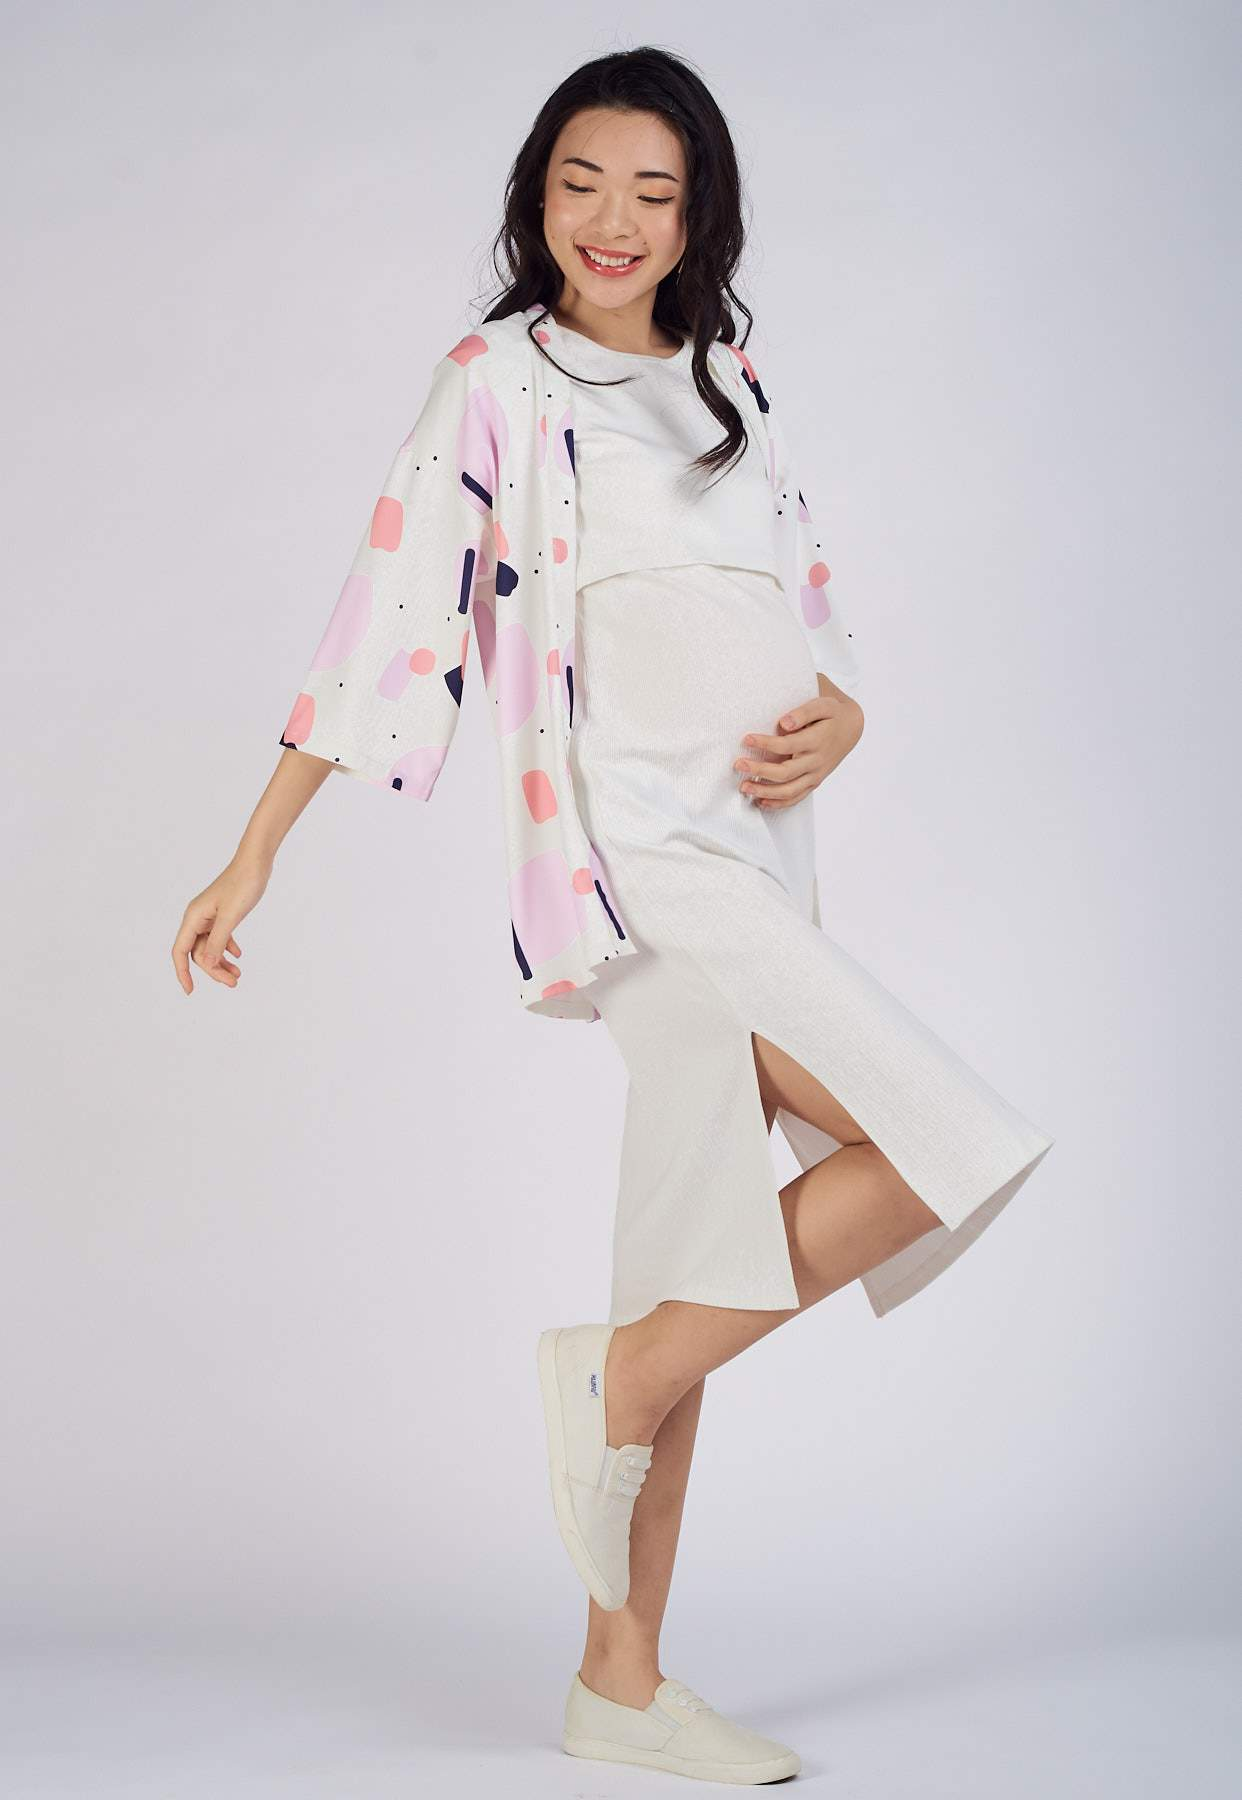 Jane Kimono Top Outerwear  by Jump Eat Cry - Maternity and nursing wear